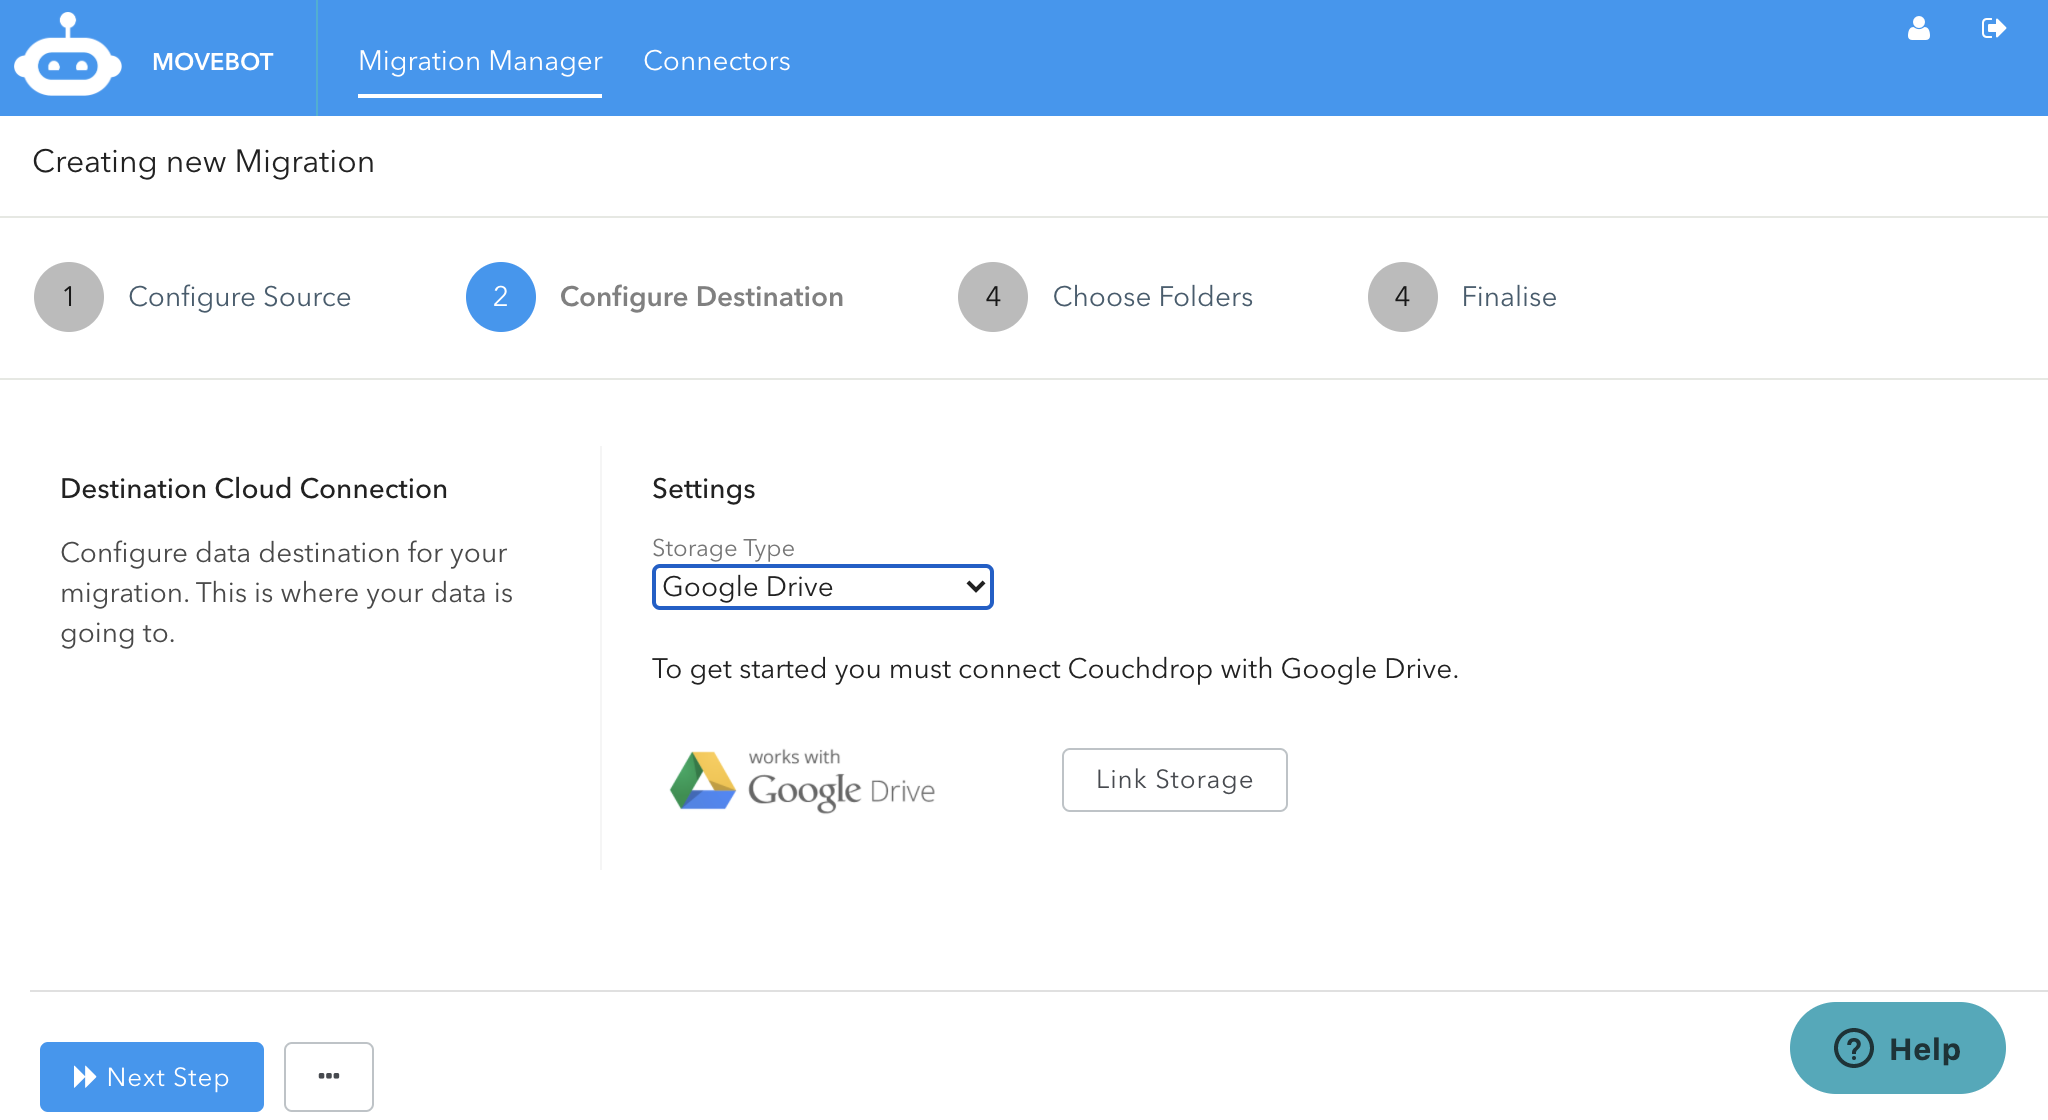 Configuring Google Drive for Transfer